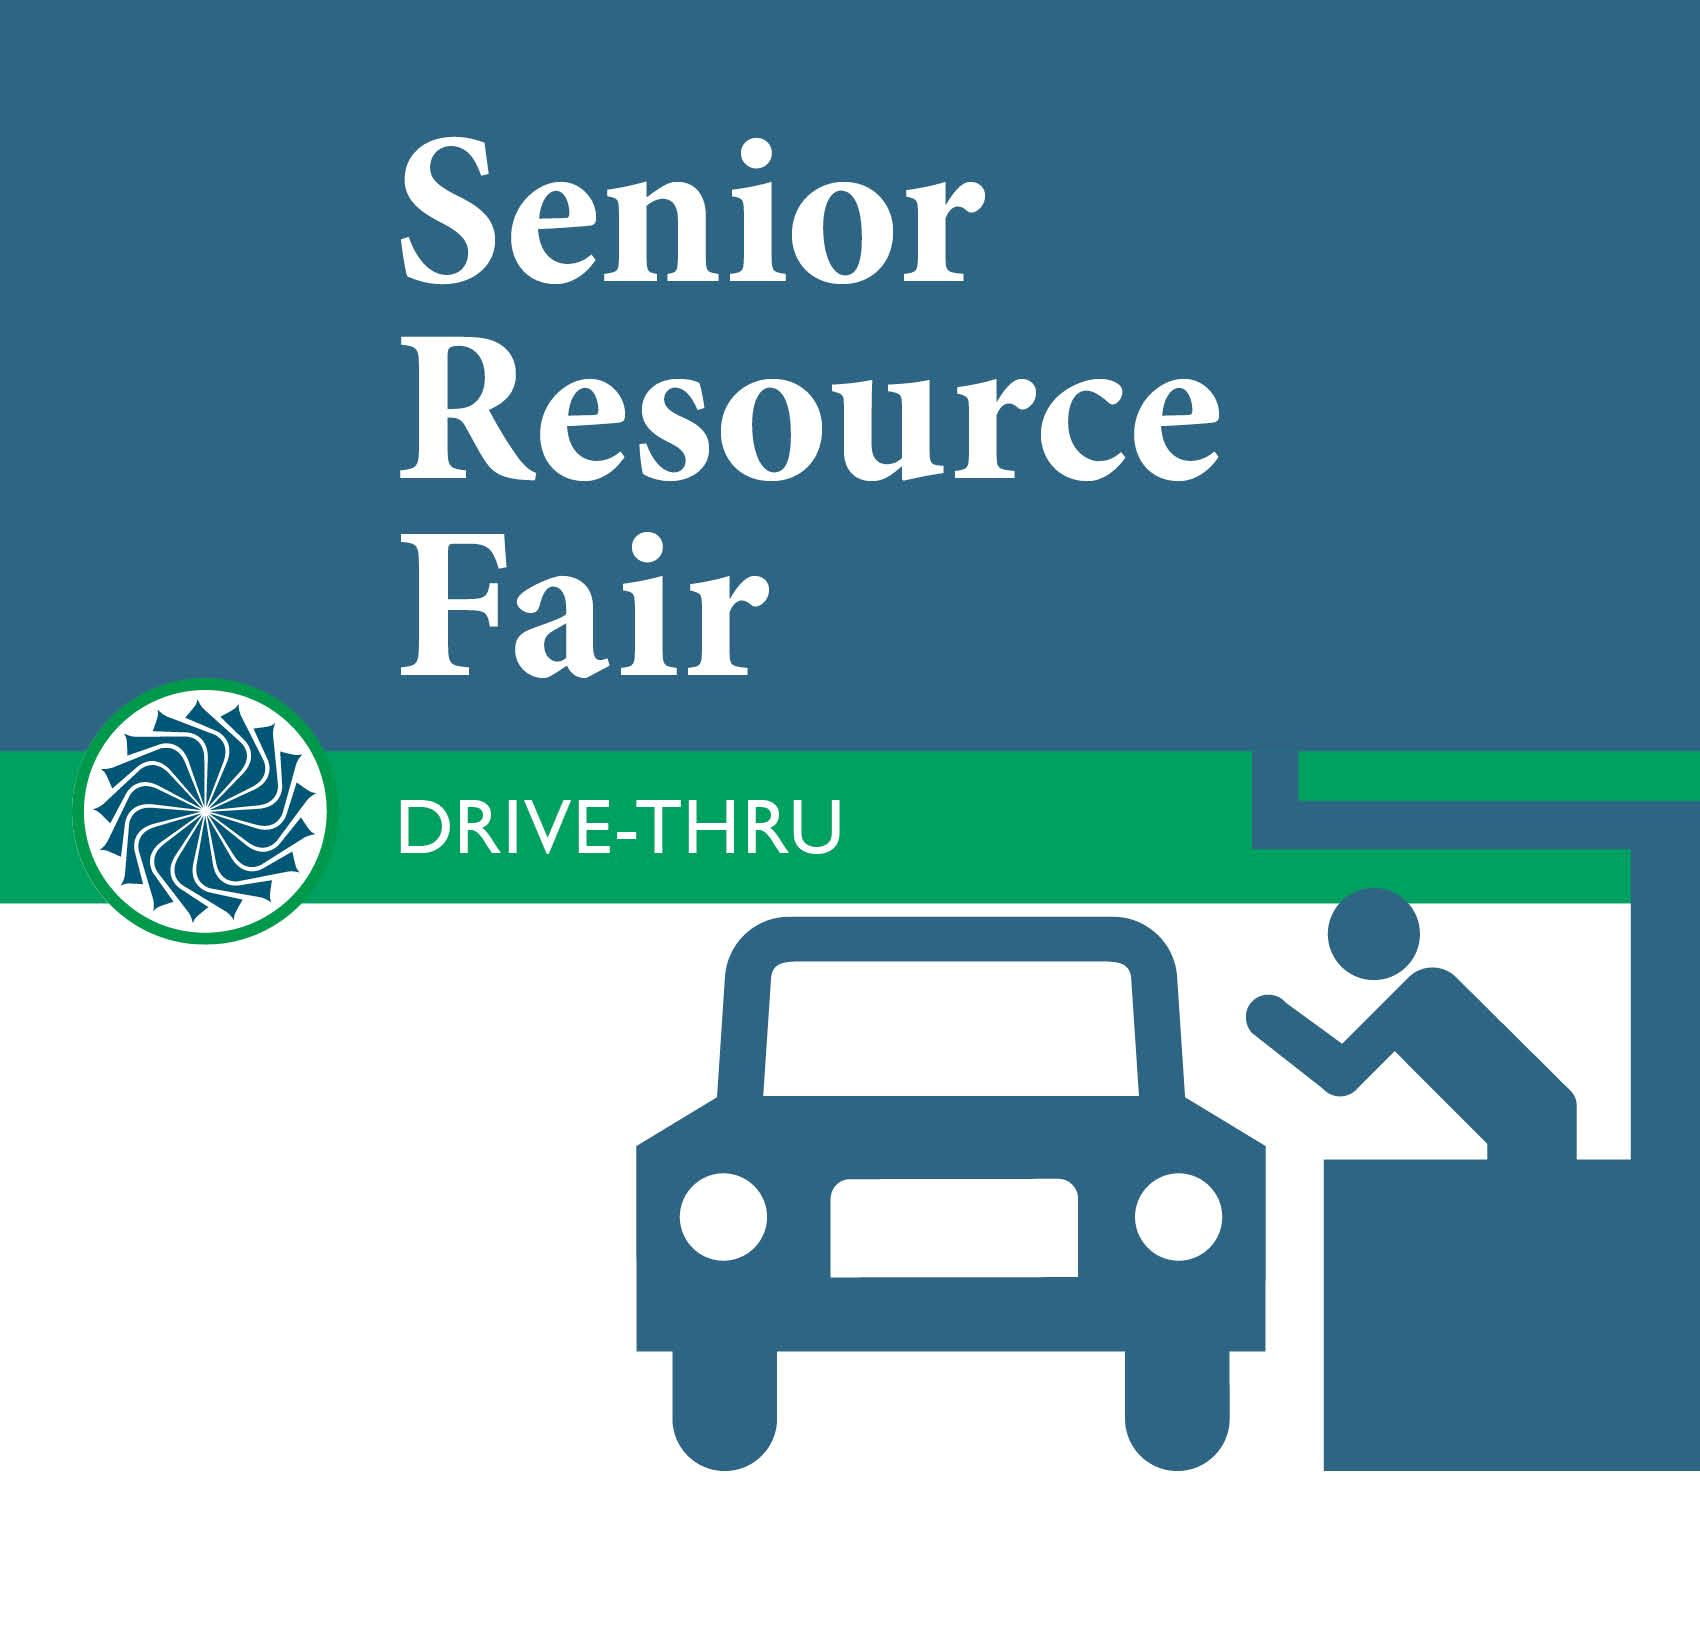 SeniorResourceFair